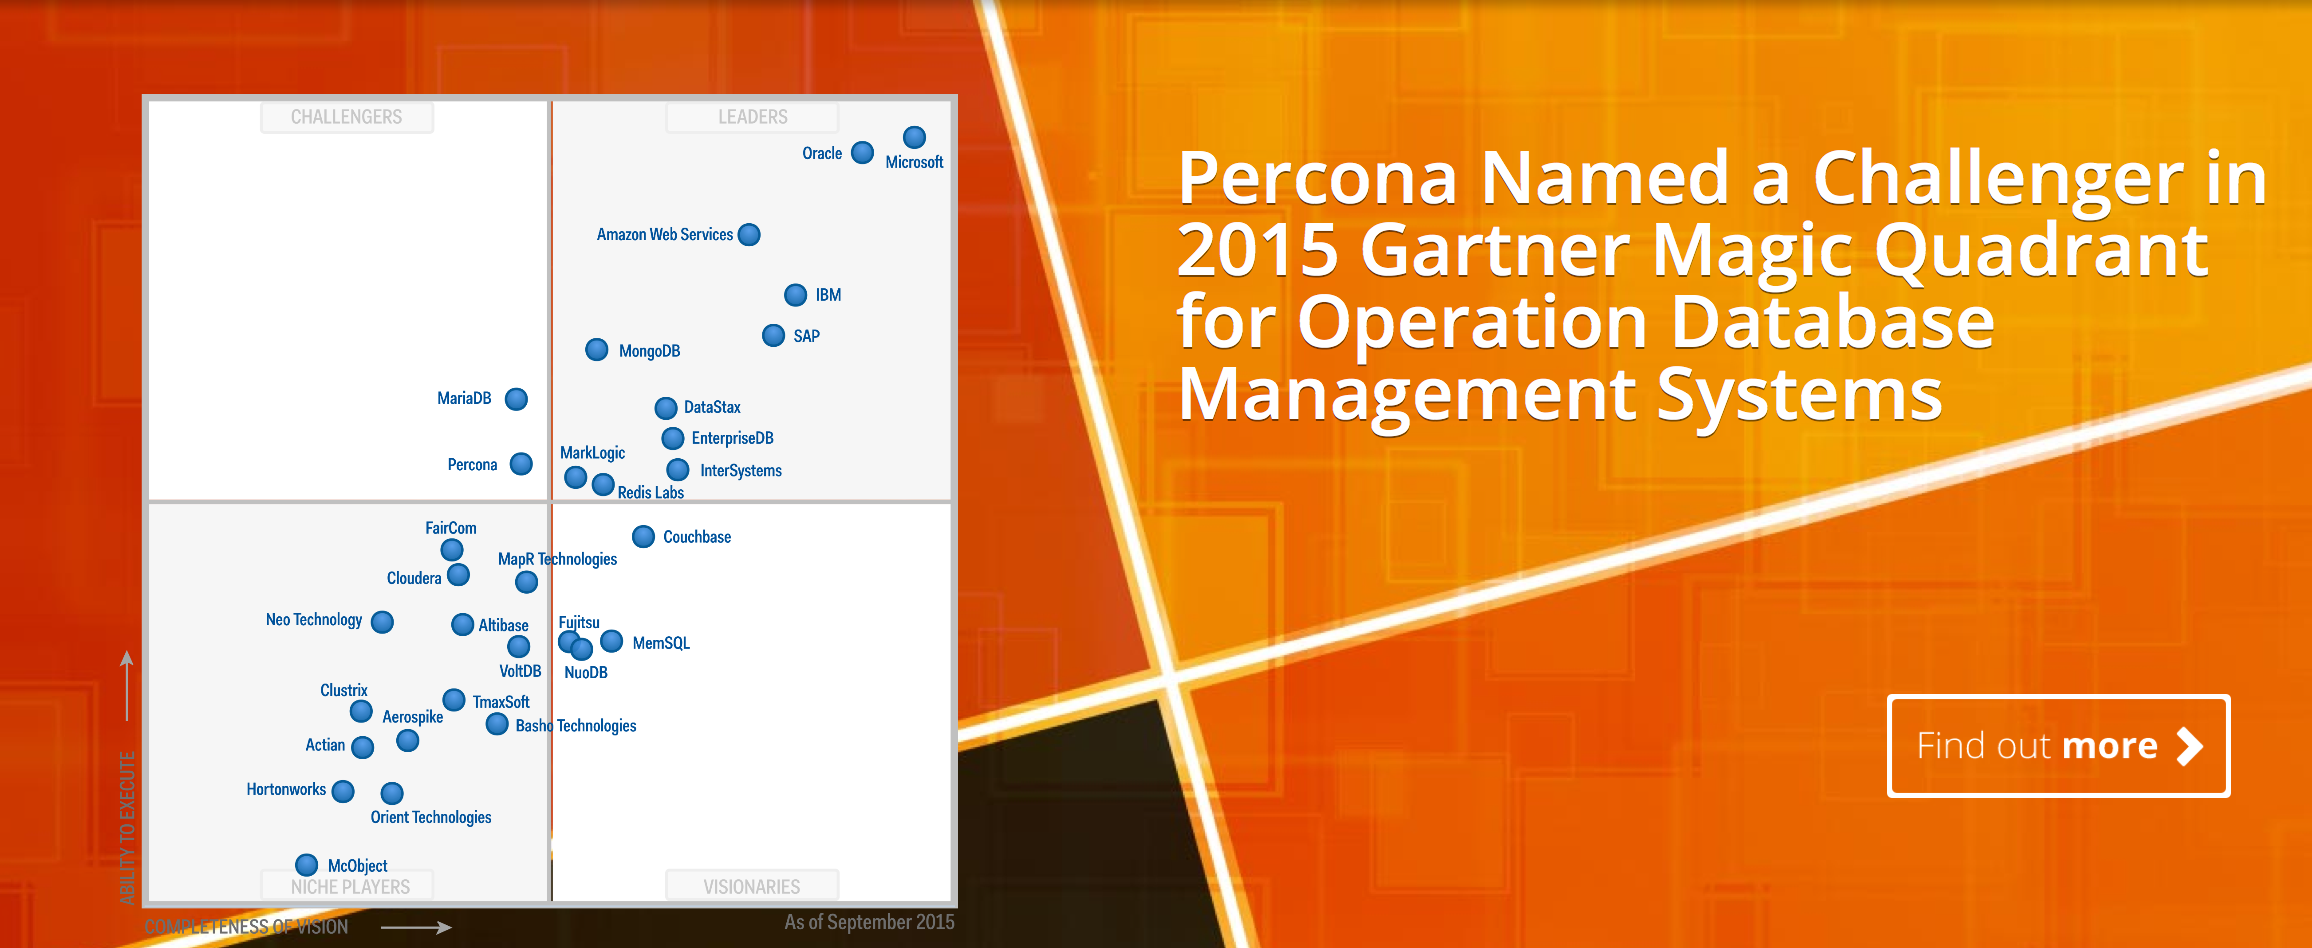 Gartner Recognizing Percona in the Magic Quadrant for ODBMS!